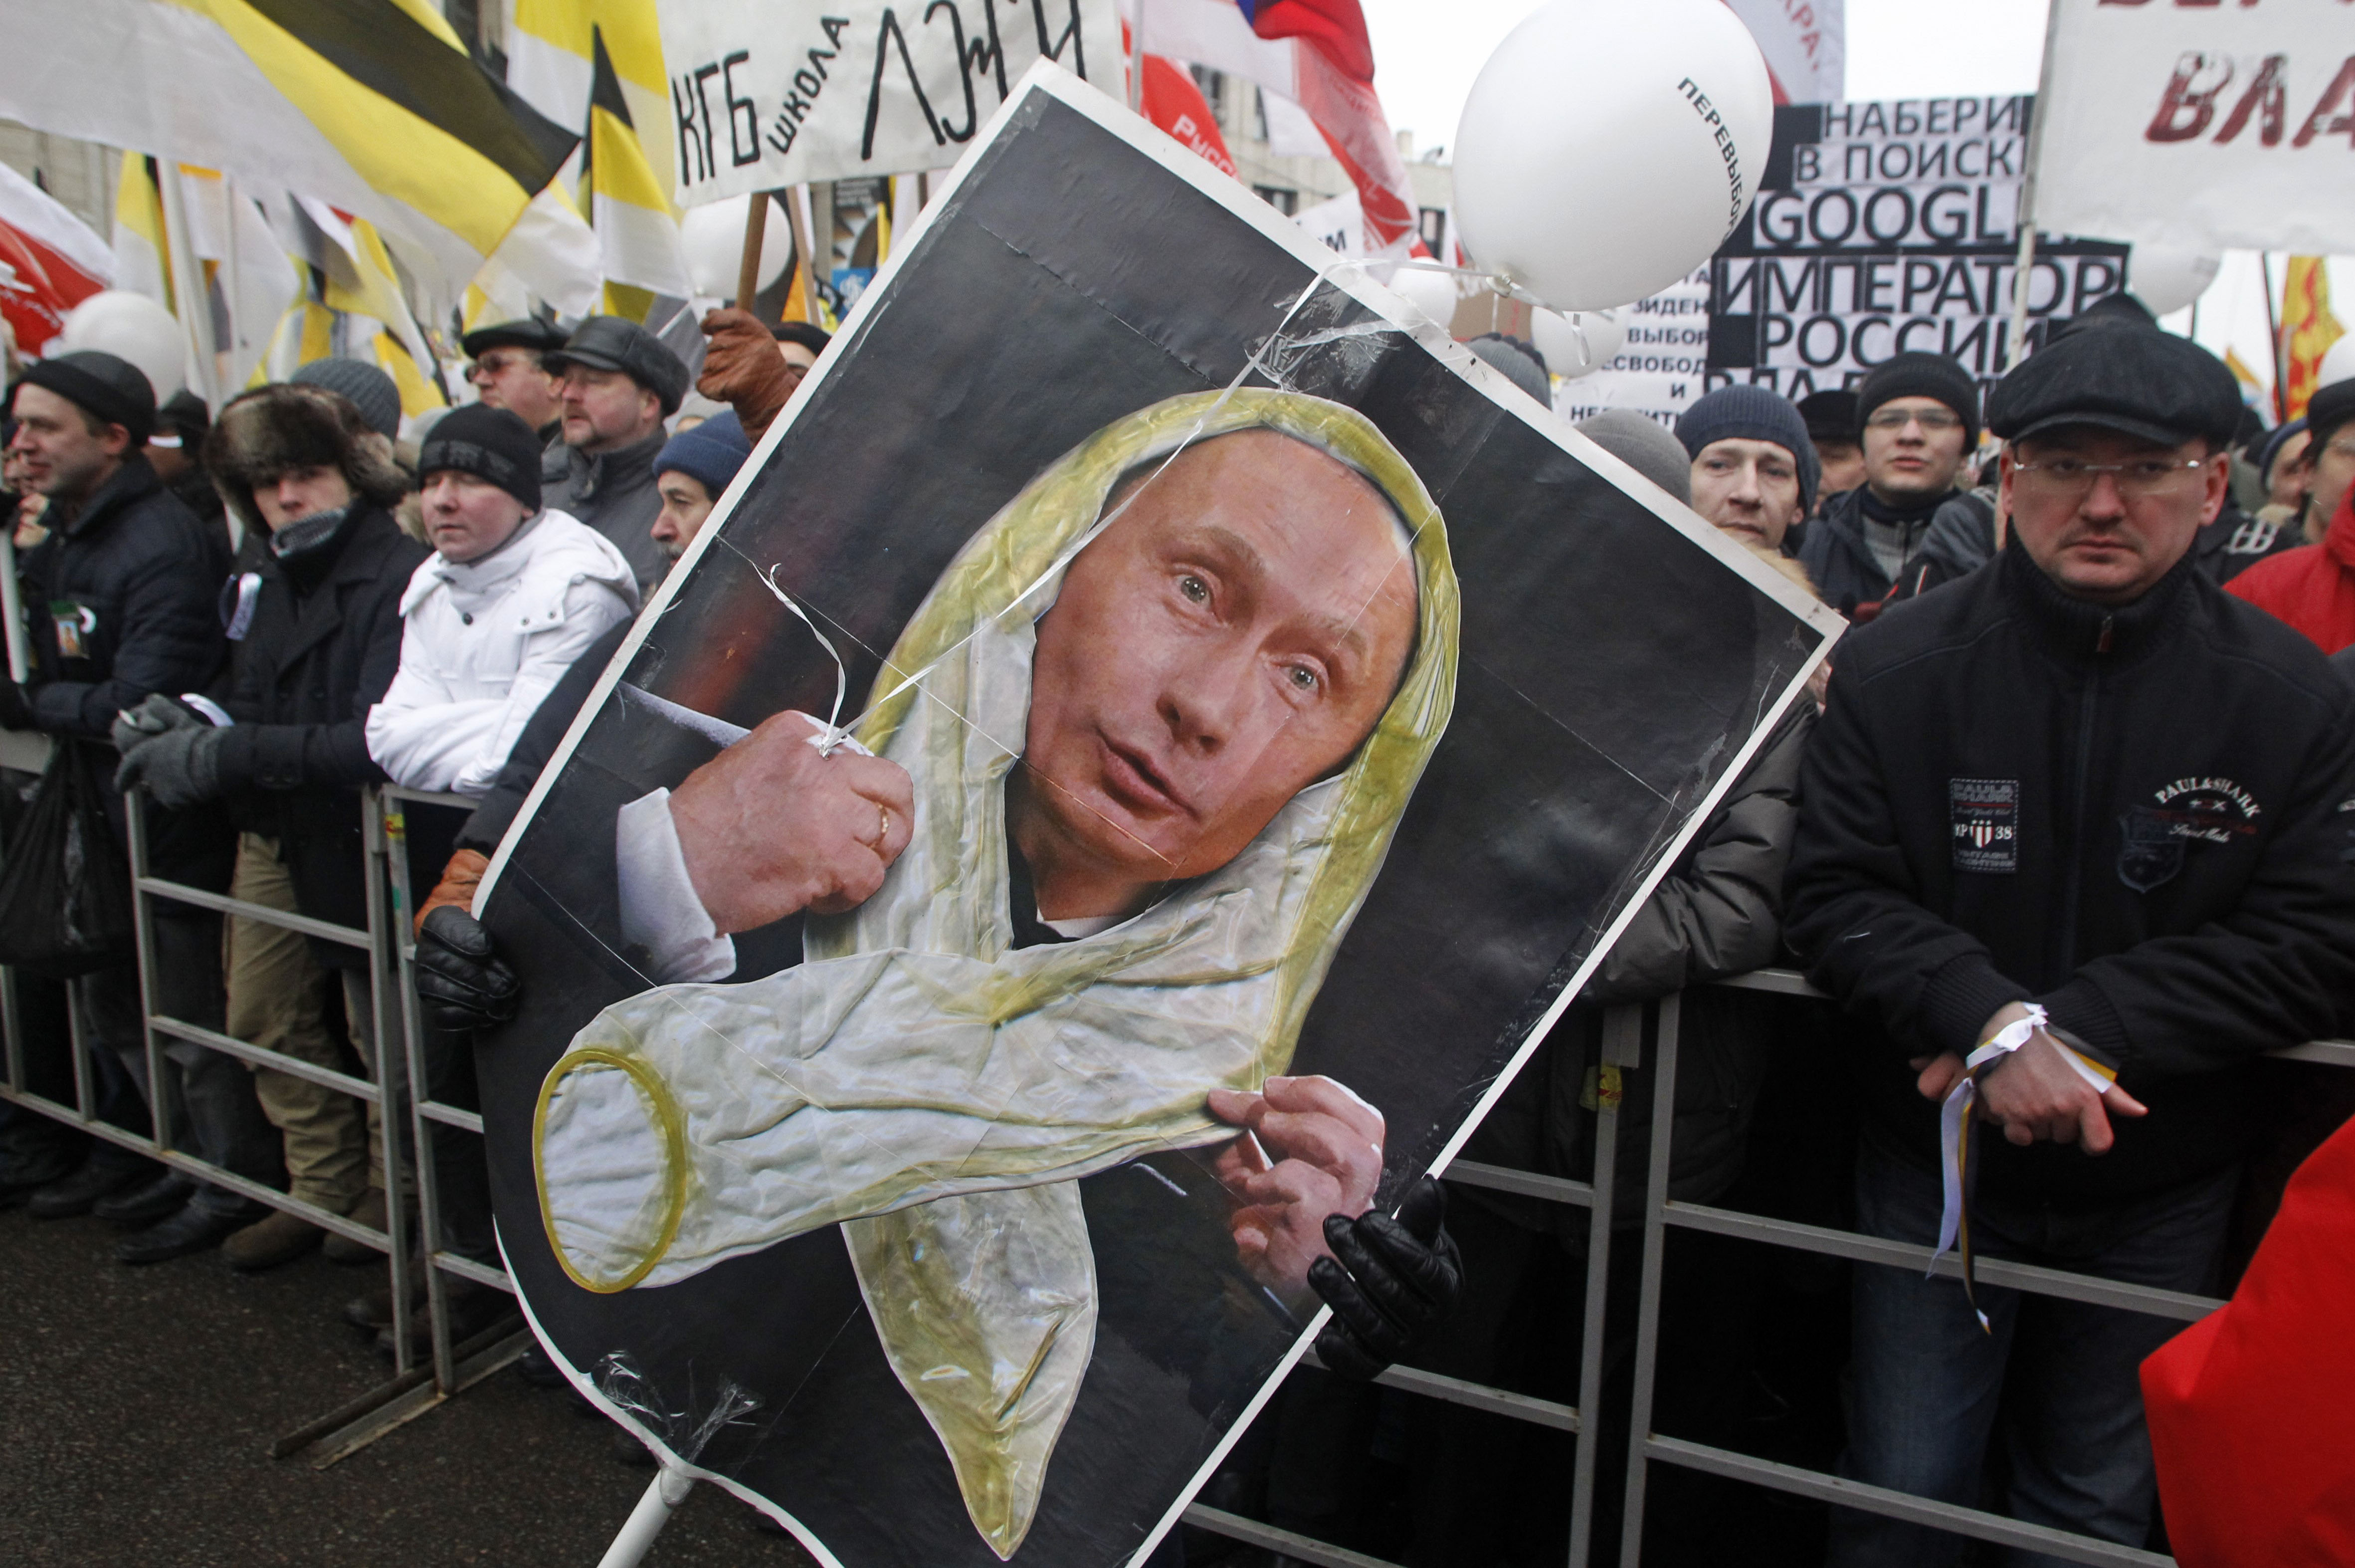 This is  a  Saturday, Dec. 24, 2011 file photo of  protesters holding a portrait of Russian Prime Minister Vladimir Putin changed by an unidentified satirical artist to show him wearing a condom, during a protest against alleged vote rigging in Russia's parliamentary elections in Moscow, Russia